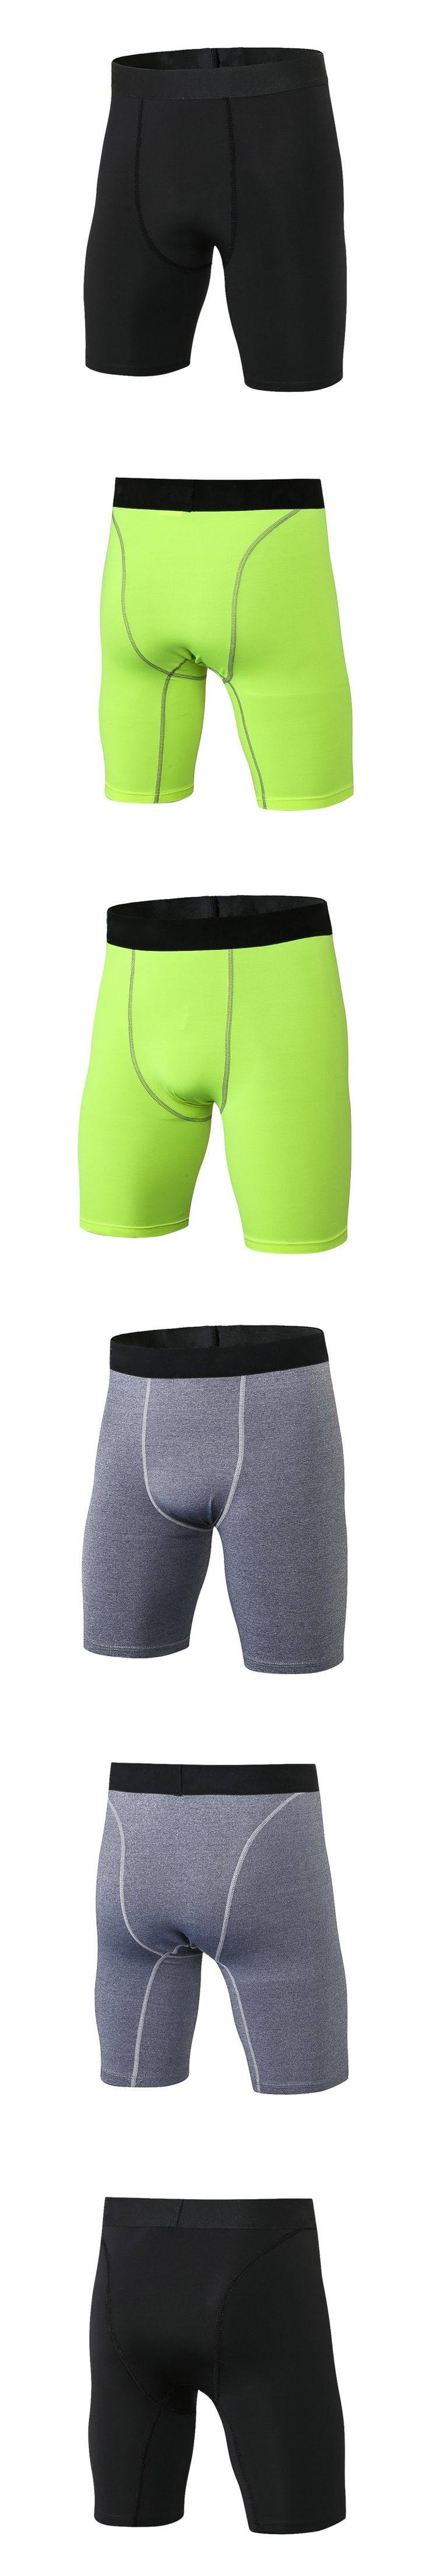 Brand Summer High Quality Shorts Men Cure Color Reversible Double-Way Breathable Sporting Shorts